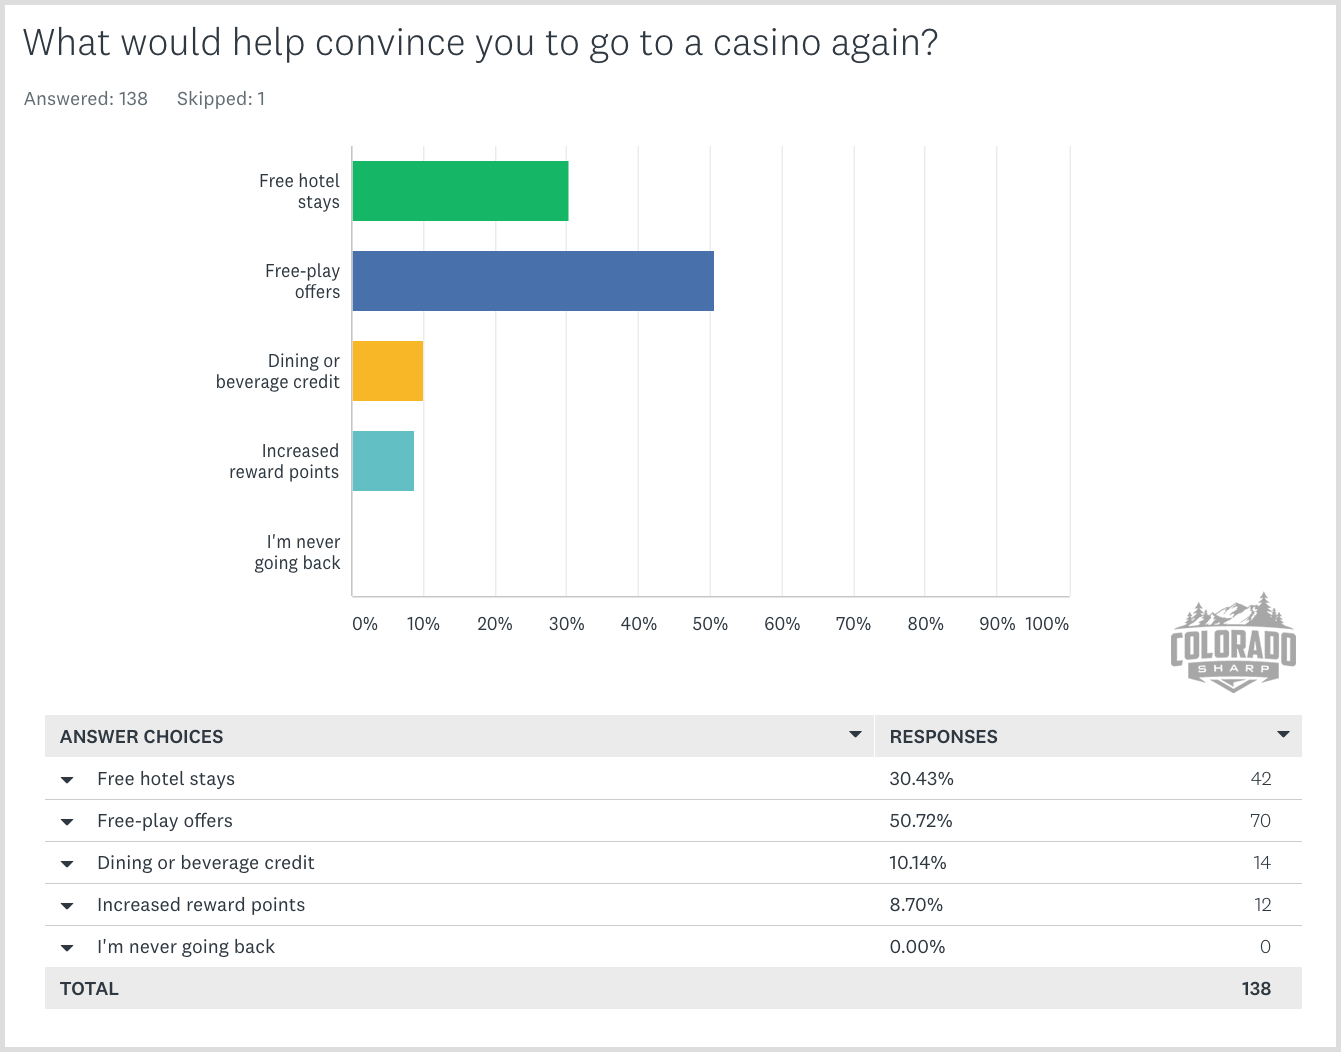 What would help convince you to go to a casino again?